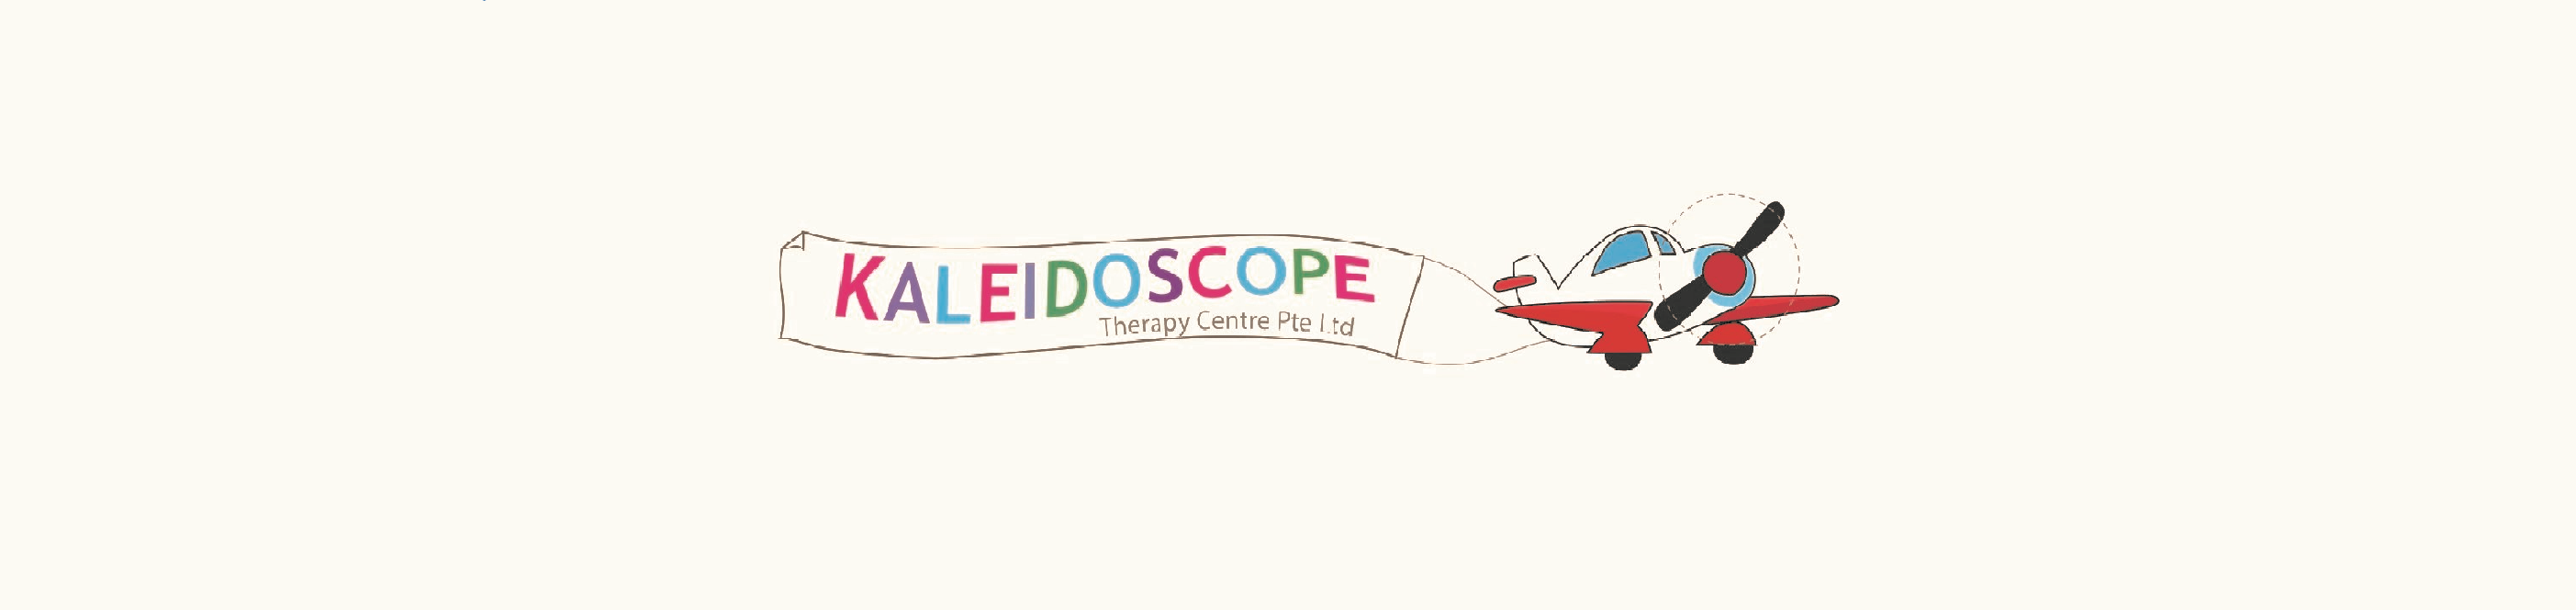 Kaleidoscope Therapy Centre is hiring a Paediatric Clinical Psychologist!